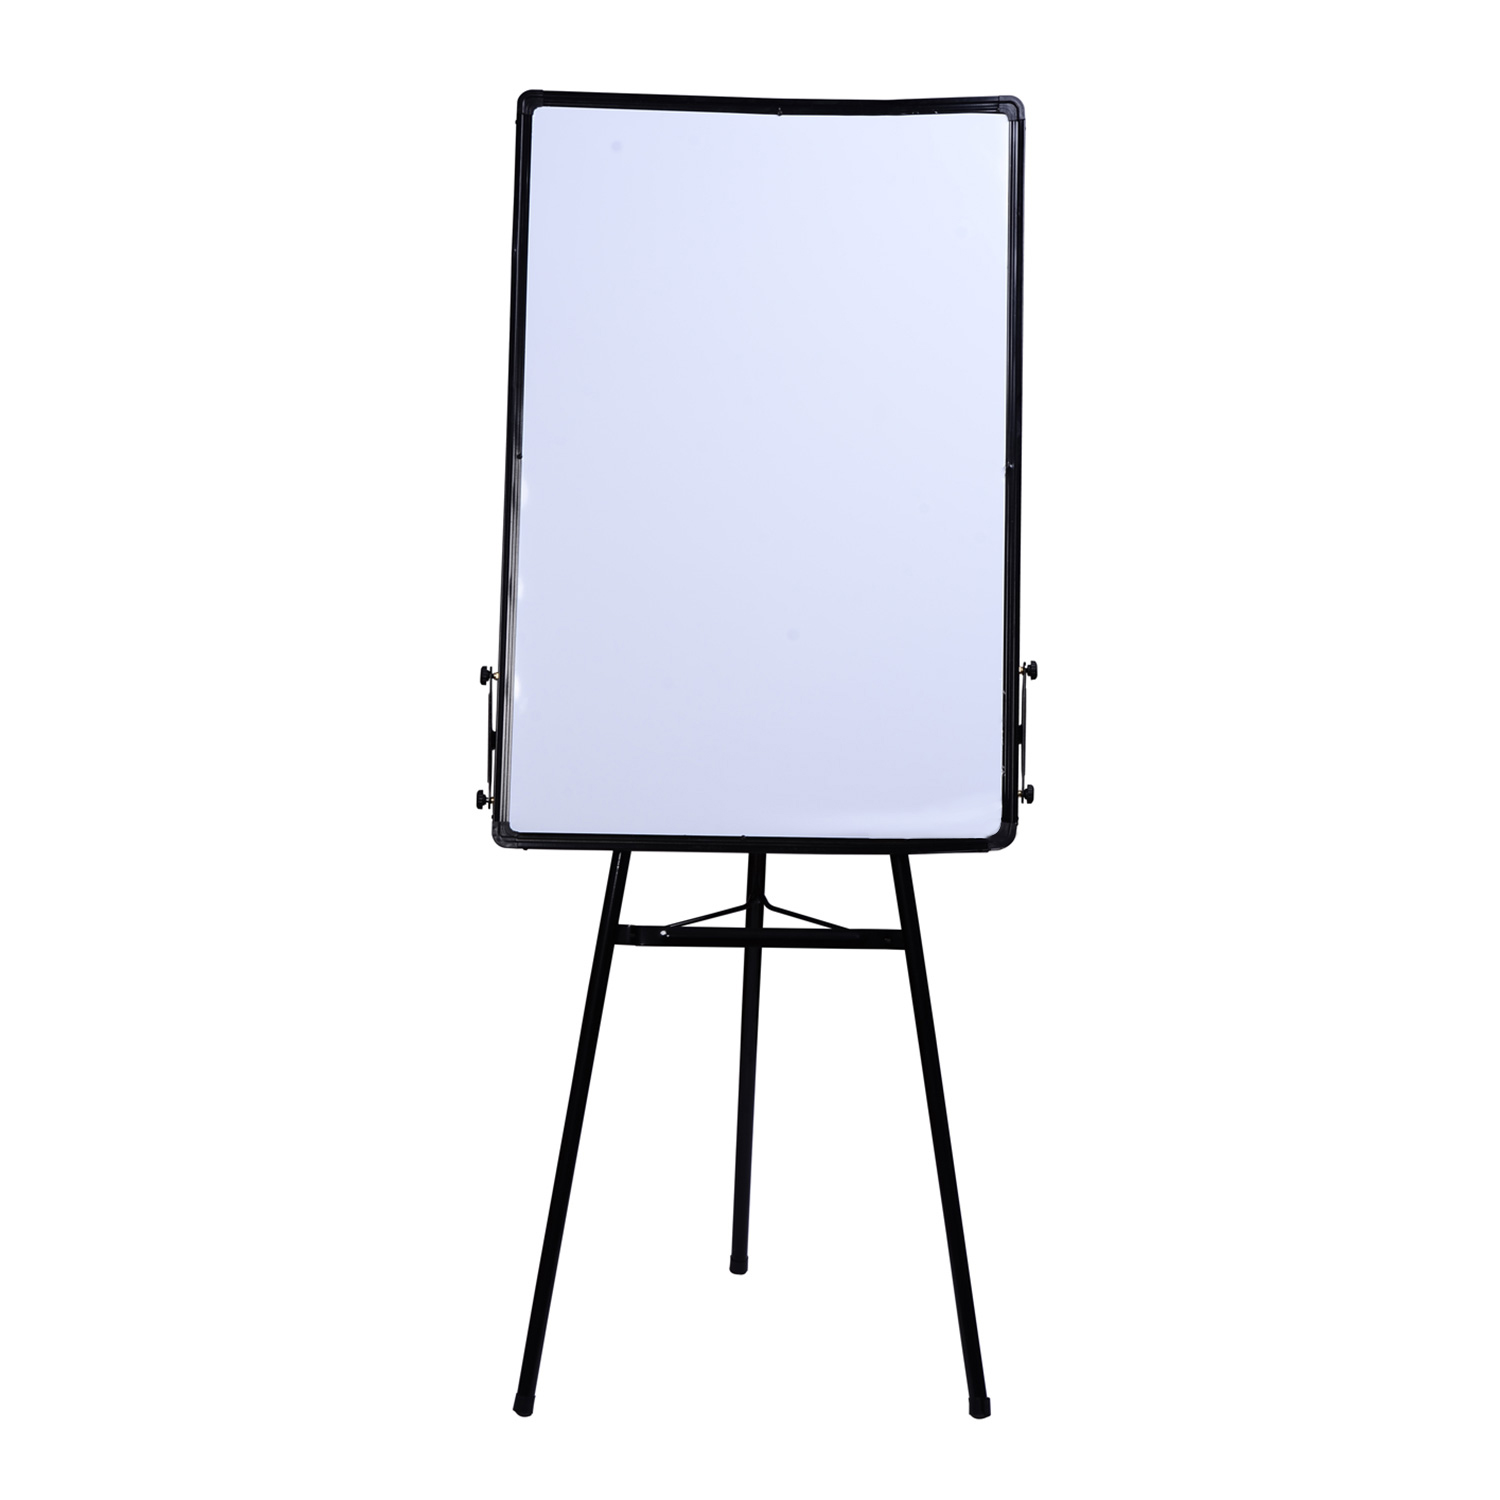 HOMCOM Blackboard Magentica White With Tripod Tripod Height Adjustable Aluminum Frame 60 × 90